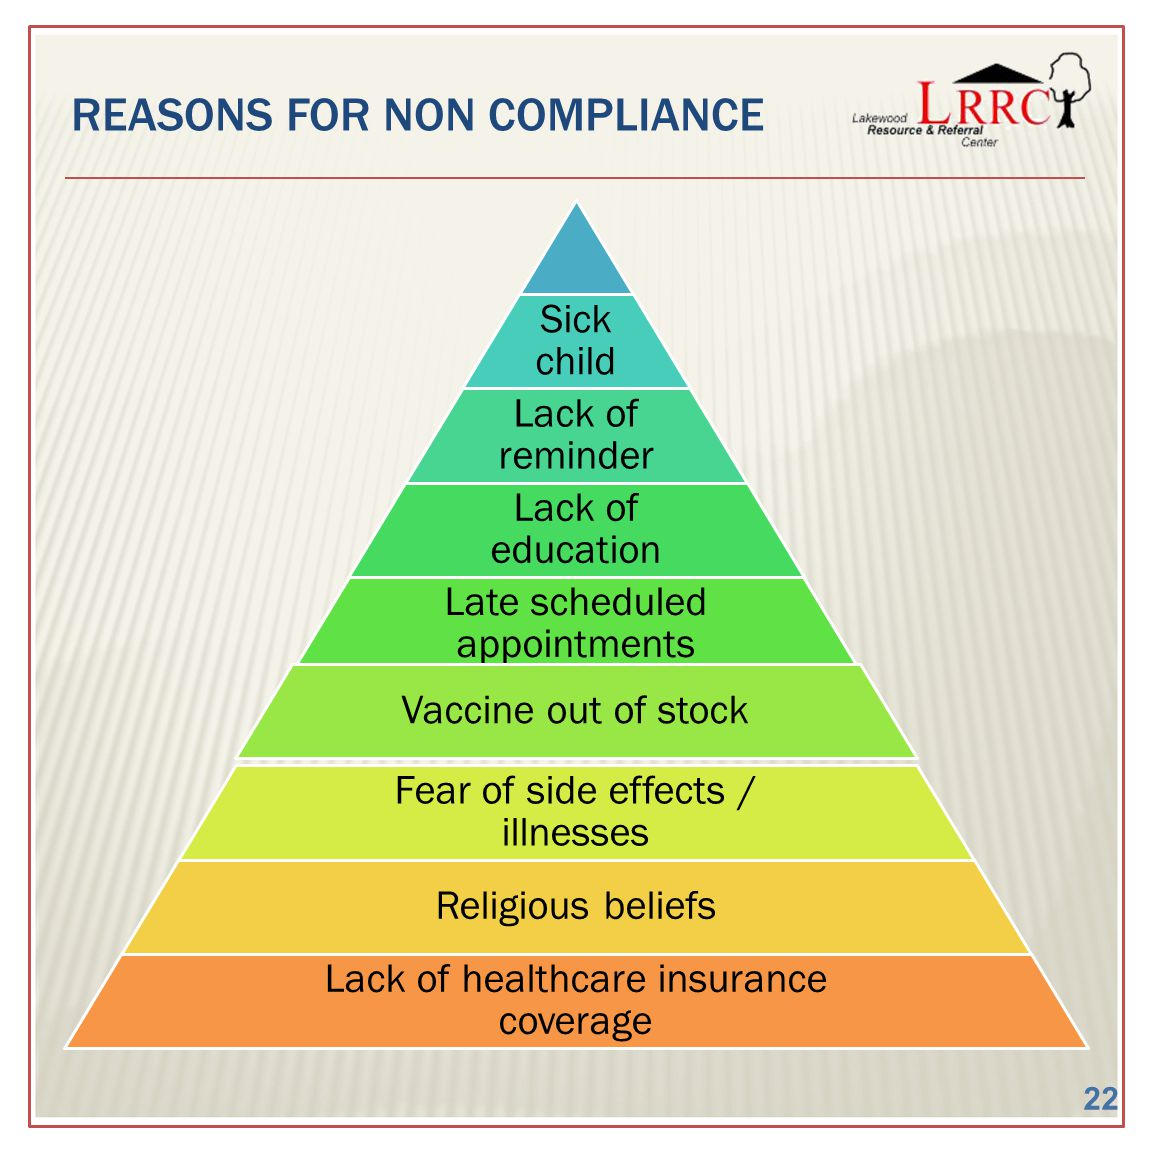 REASONS FOR NON COMPLIANCE Sick child Lack of reminder Lack of education Late scheduled appointments Vaccine out of stock Fear of side effects / illnesses Religious beliefs Lack of healthcare insurance coverage 22